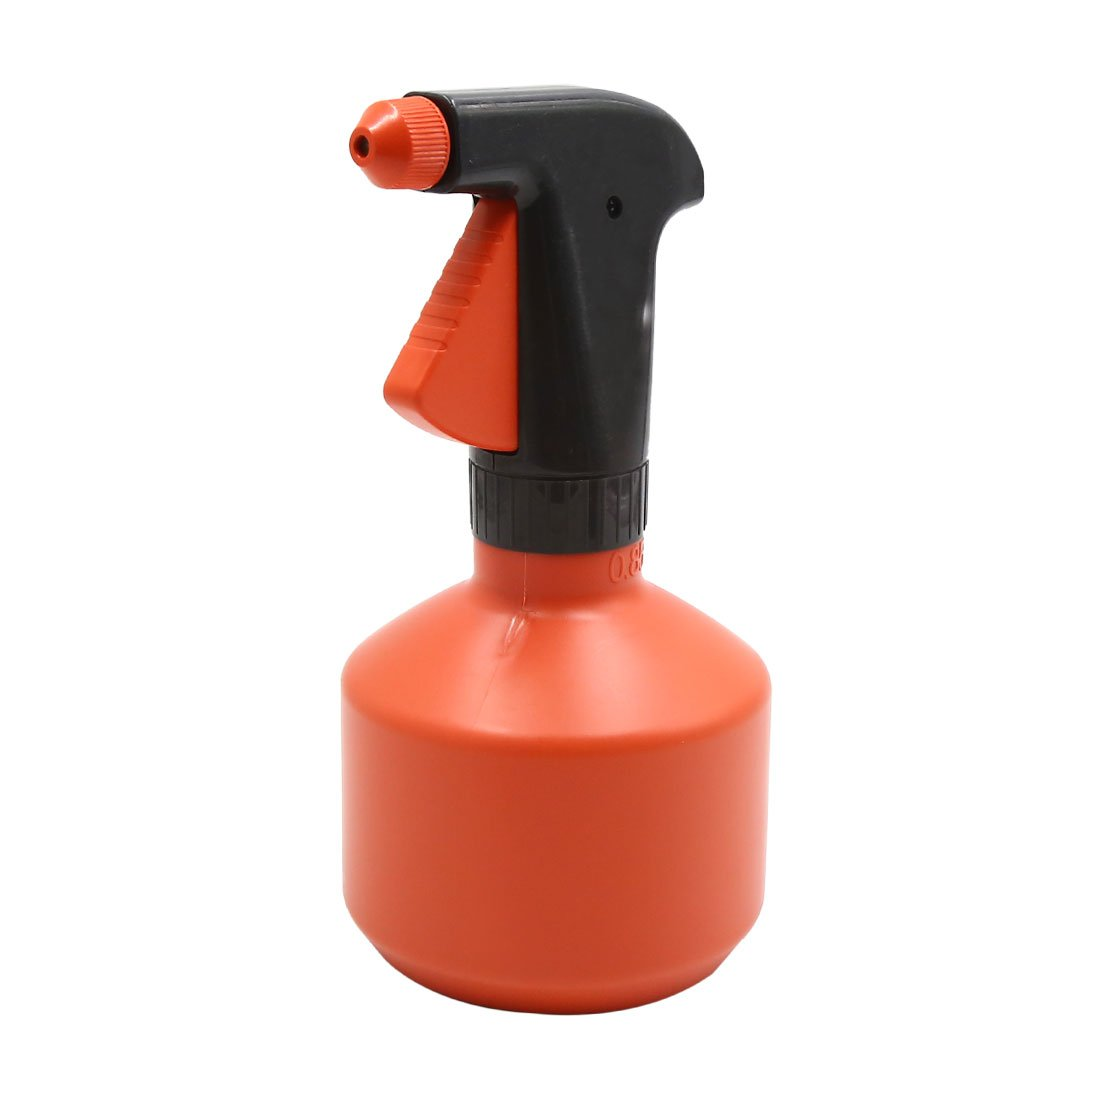 uxcell Plastic Orange Car Trigger Spray Bottle Window Washing Cleaner Tool 0.85L